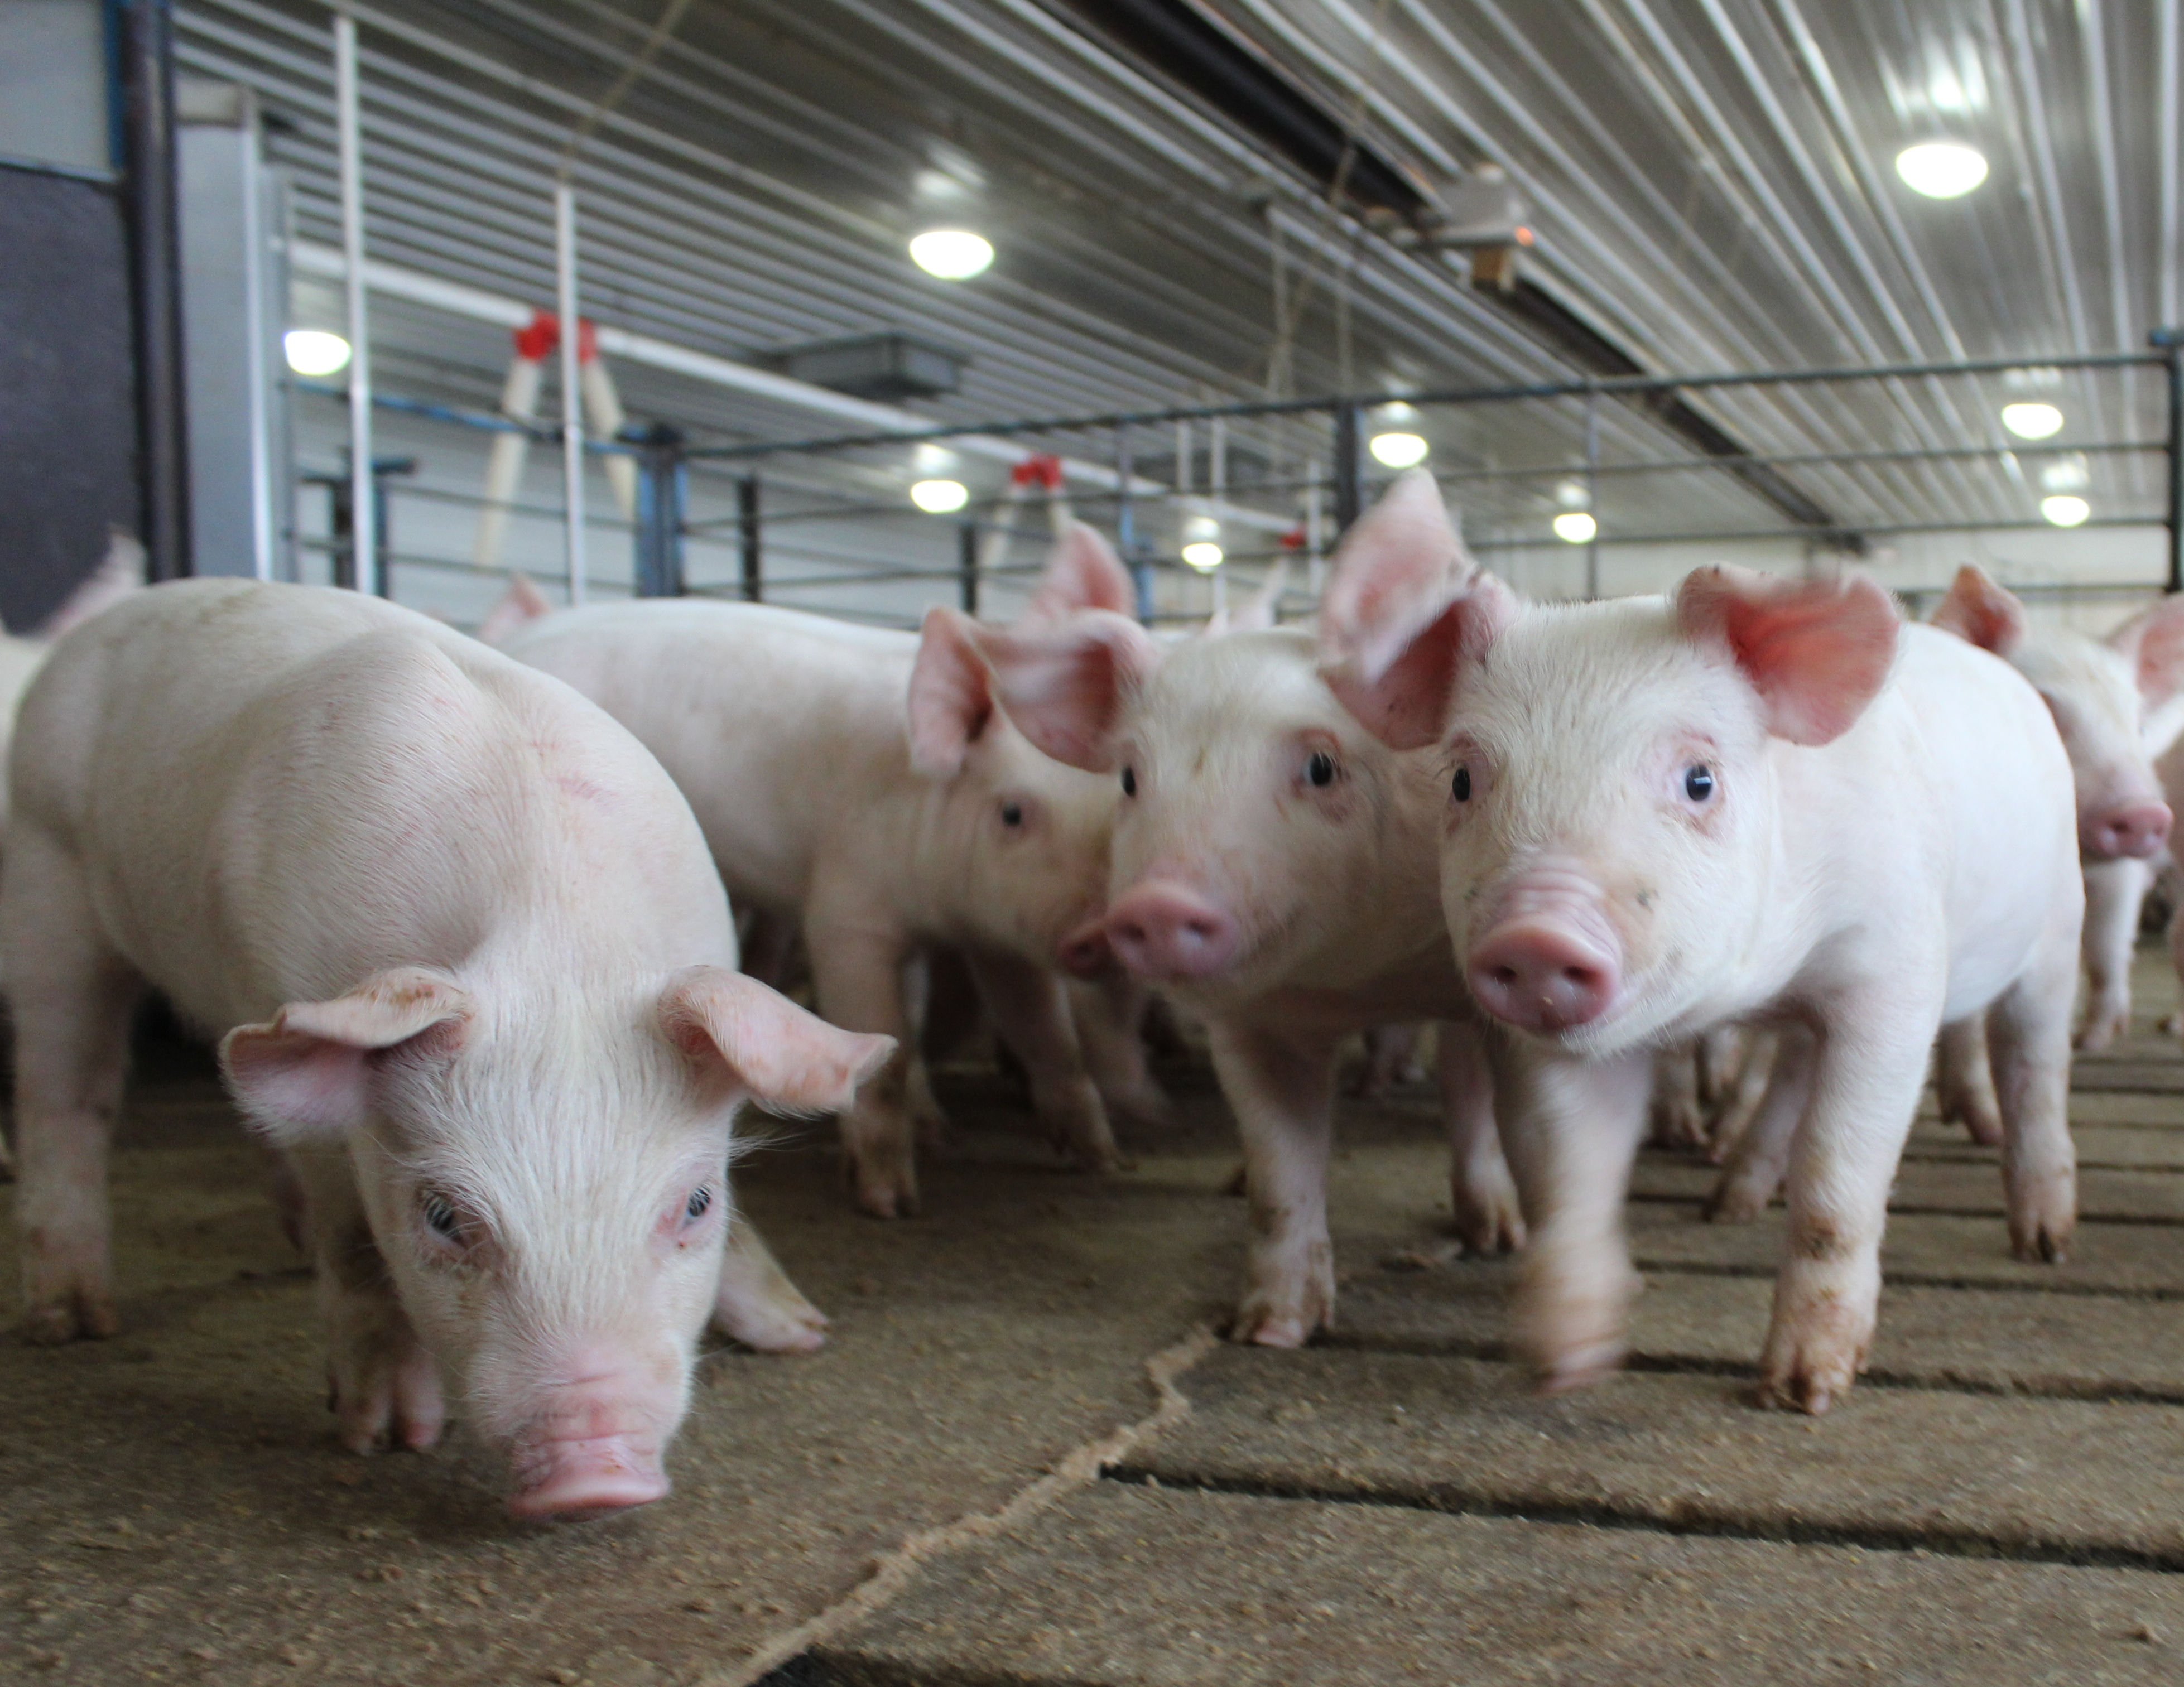 The Fifth Element What Is Lacking For An Efficient Business In Ukrainian Pig Breeding